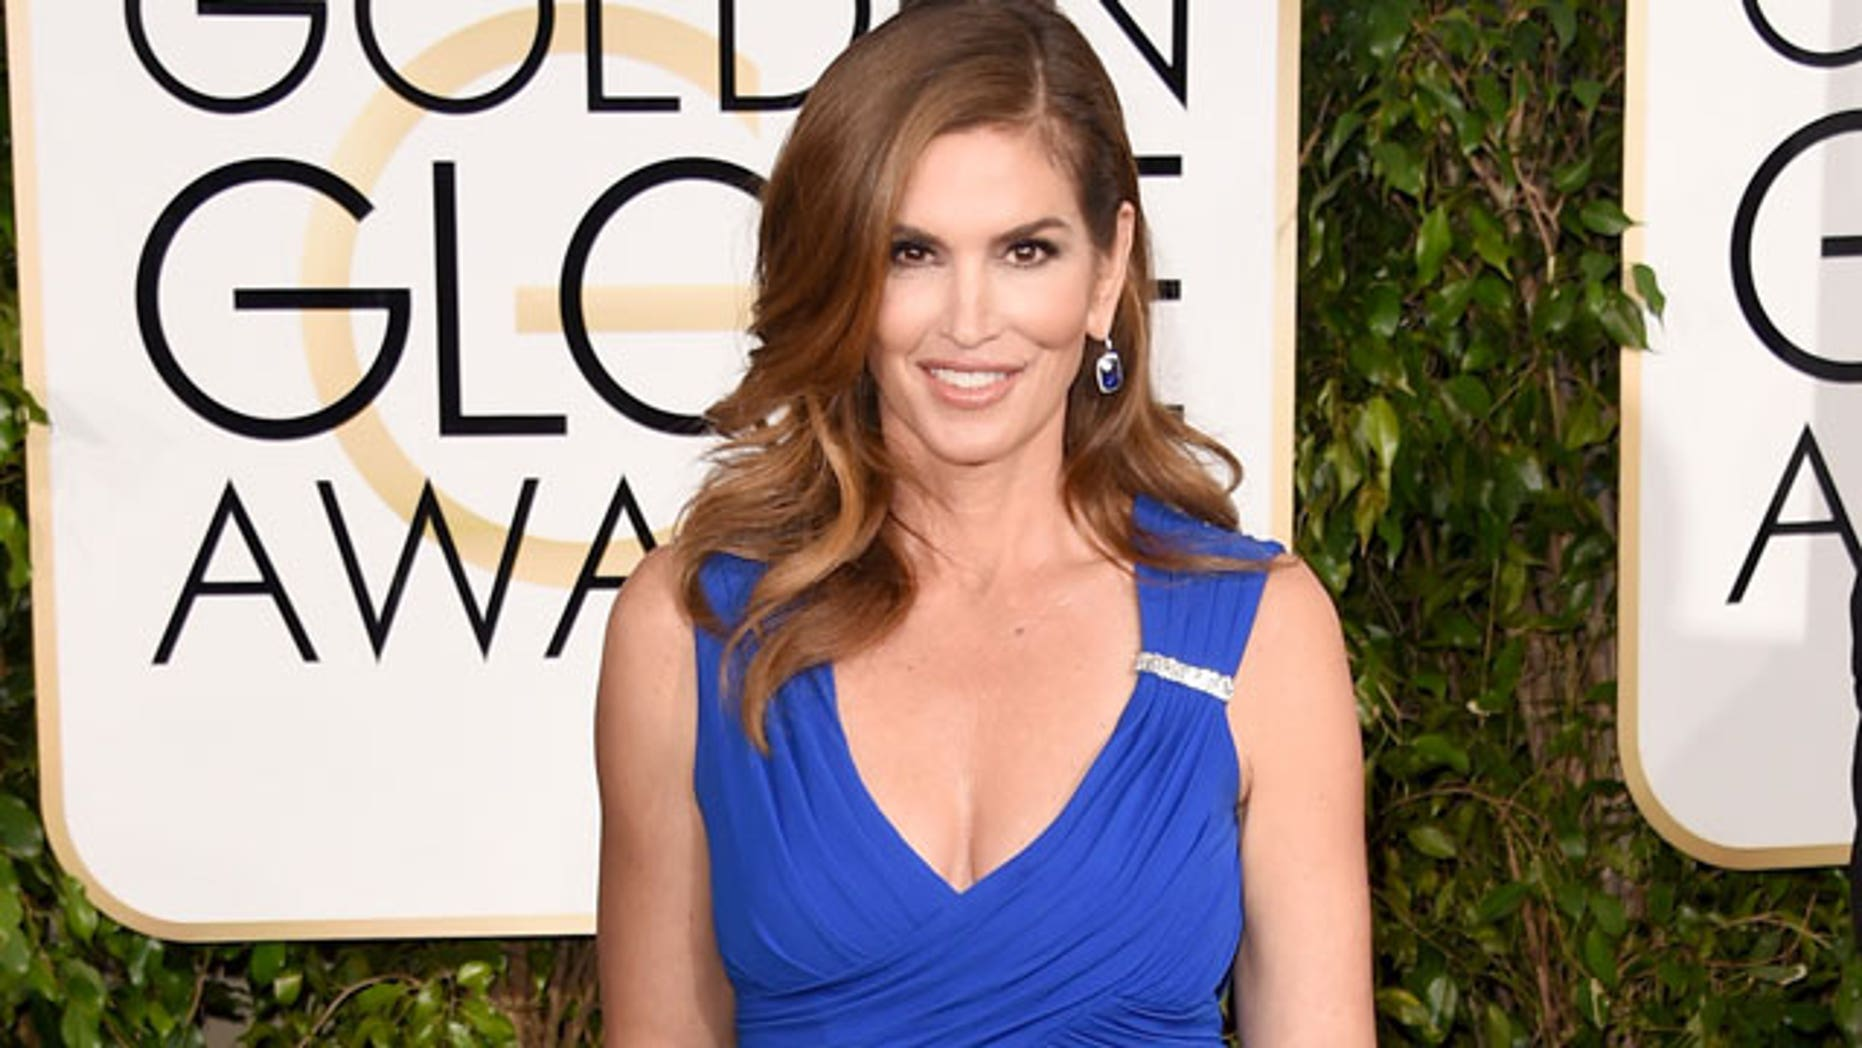 Veteran supermodel Cindy Crawford explains why she still poses nude at 53.